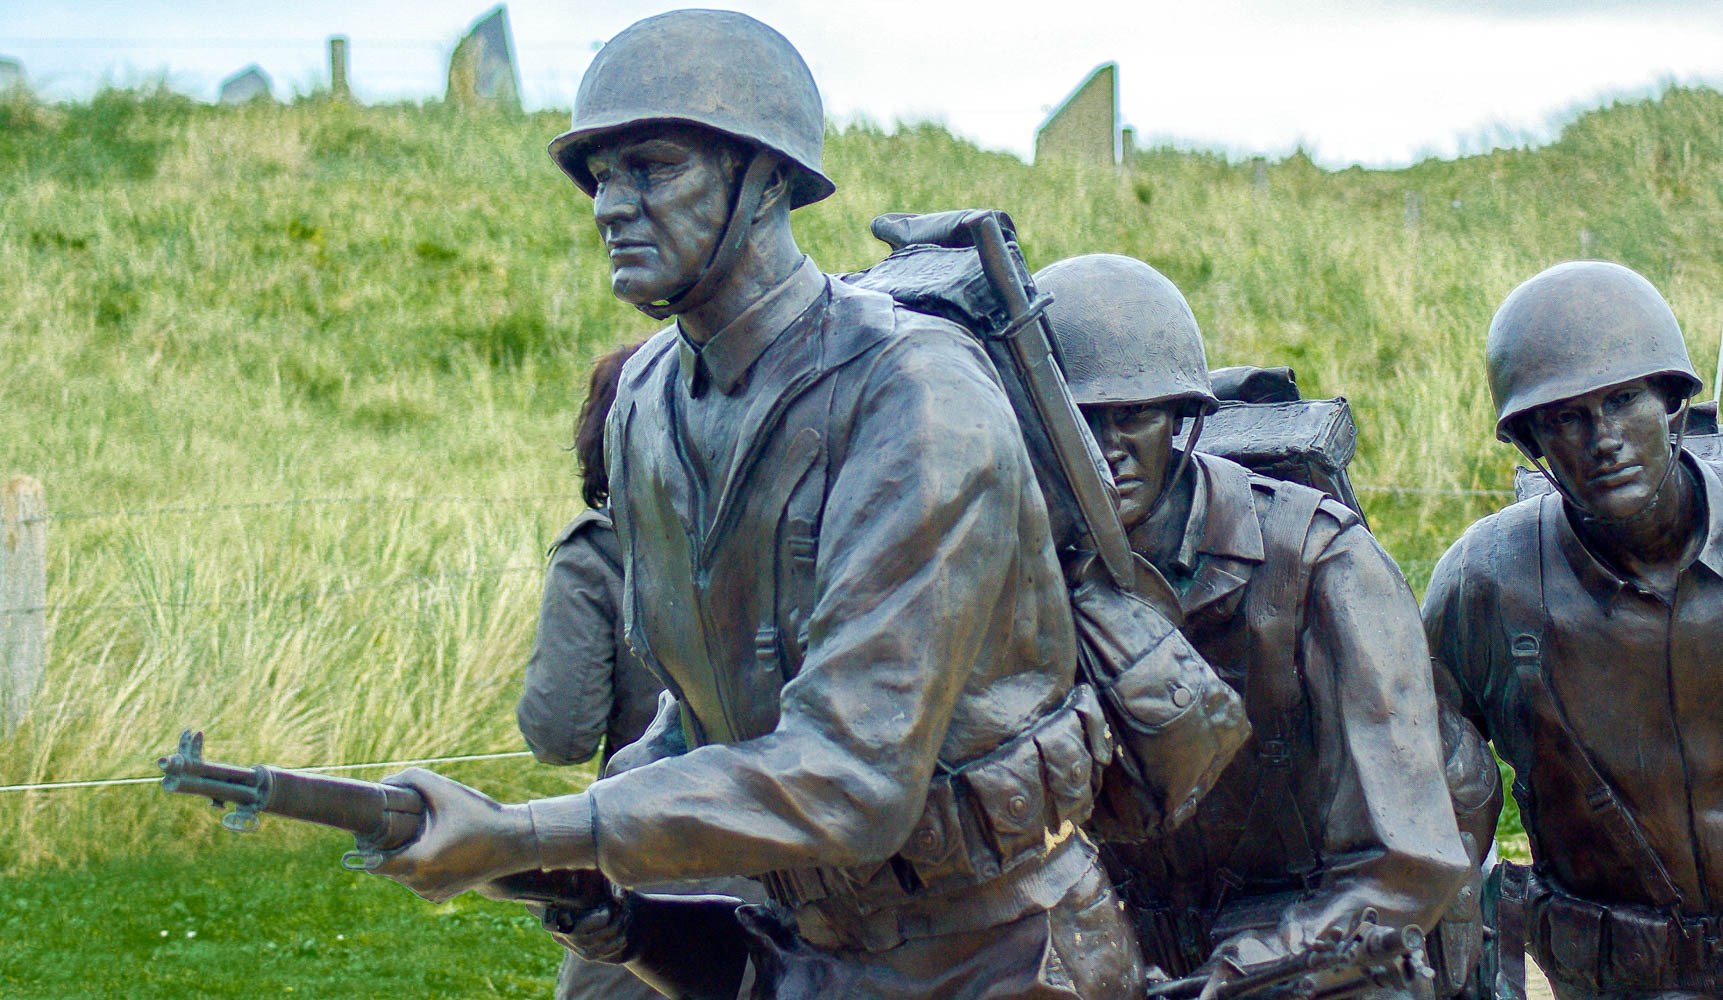 What to see at Utah Beach in Normandy, France | World War II and D-Day sites, museums, memorials, monuments, shops, restaurants, and more! #utahbeach #normandy #france #wwii #dday